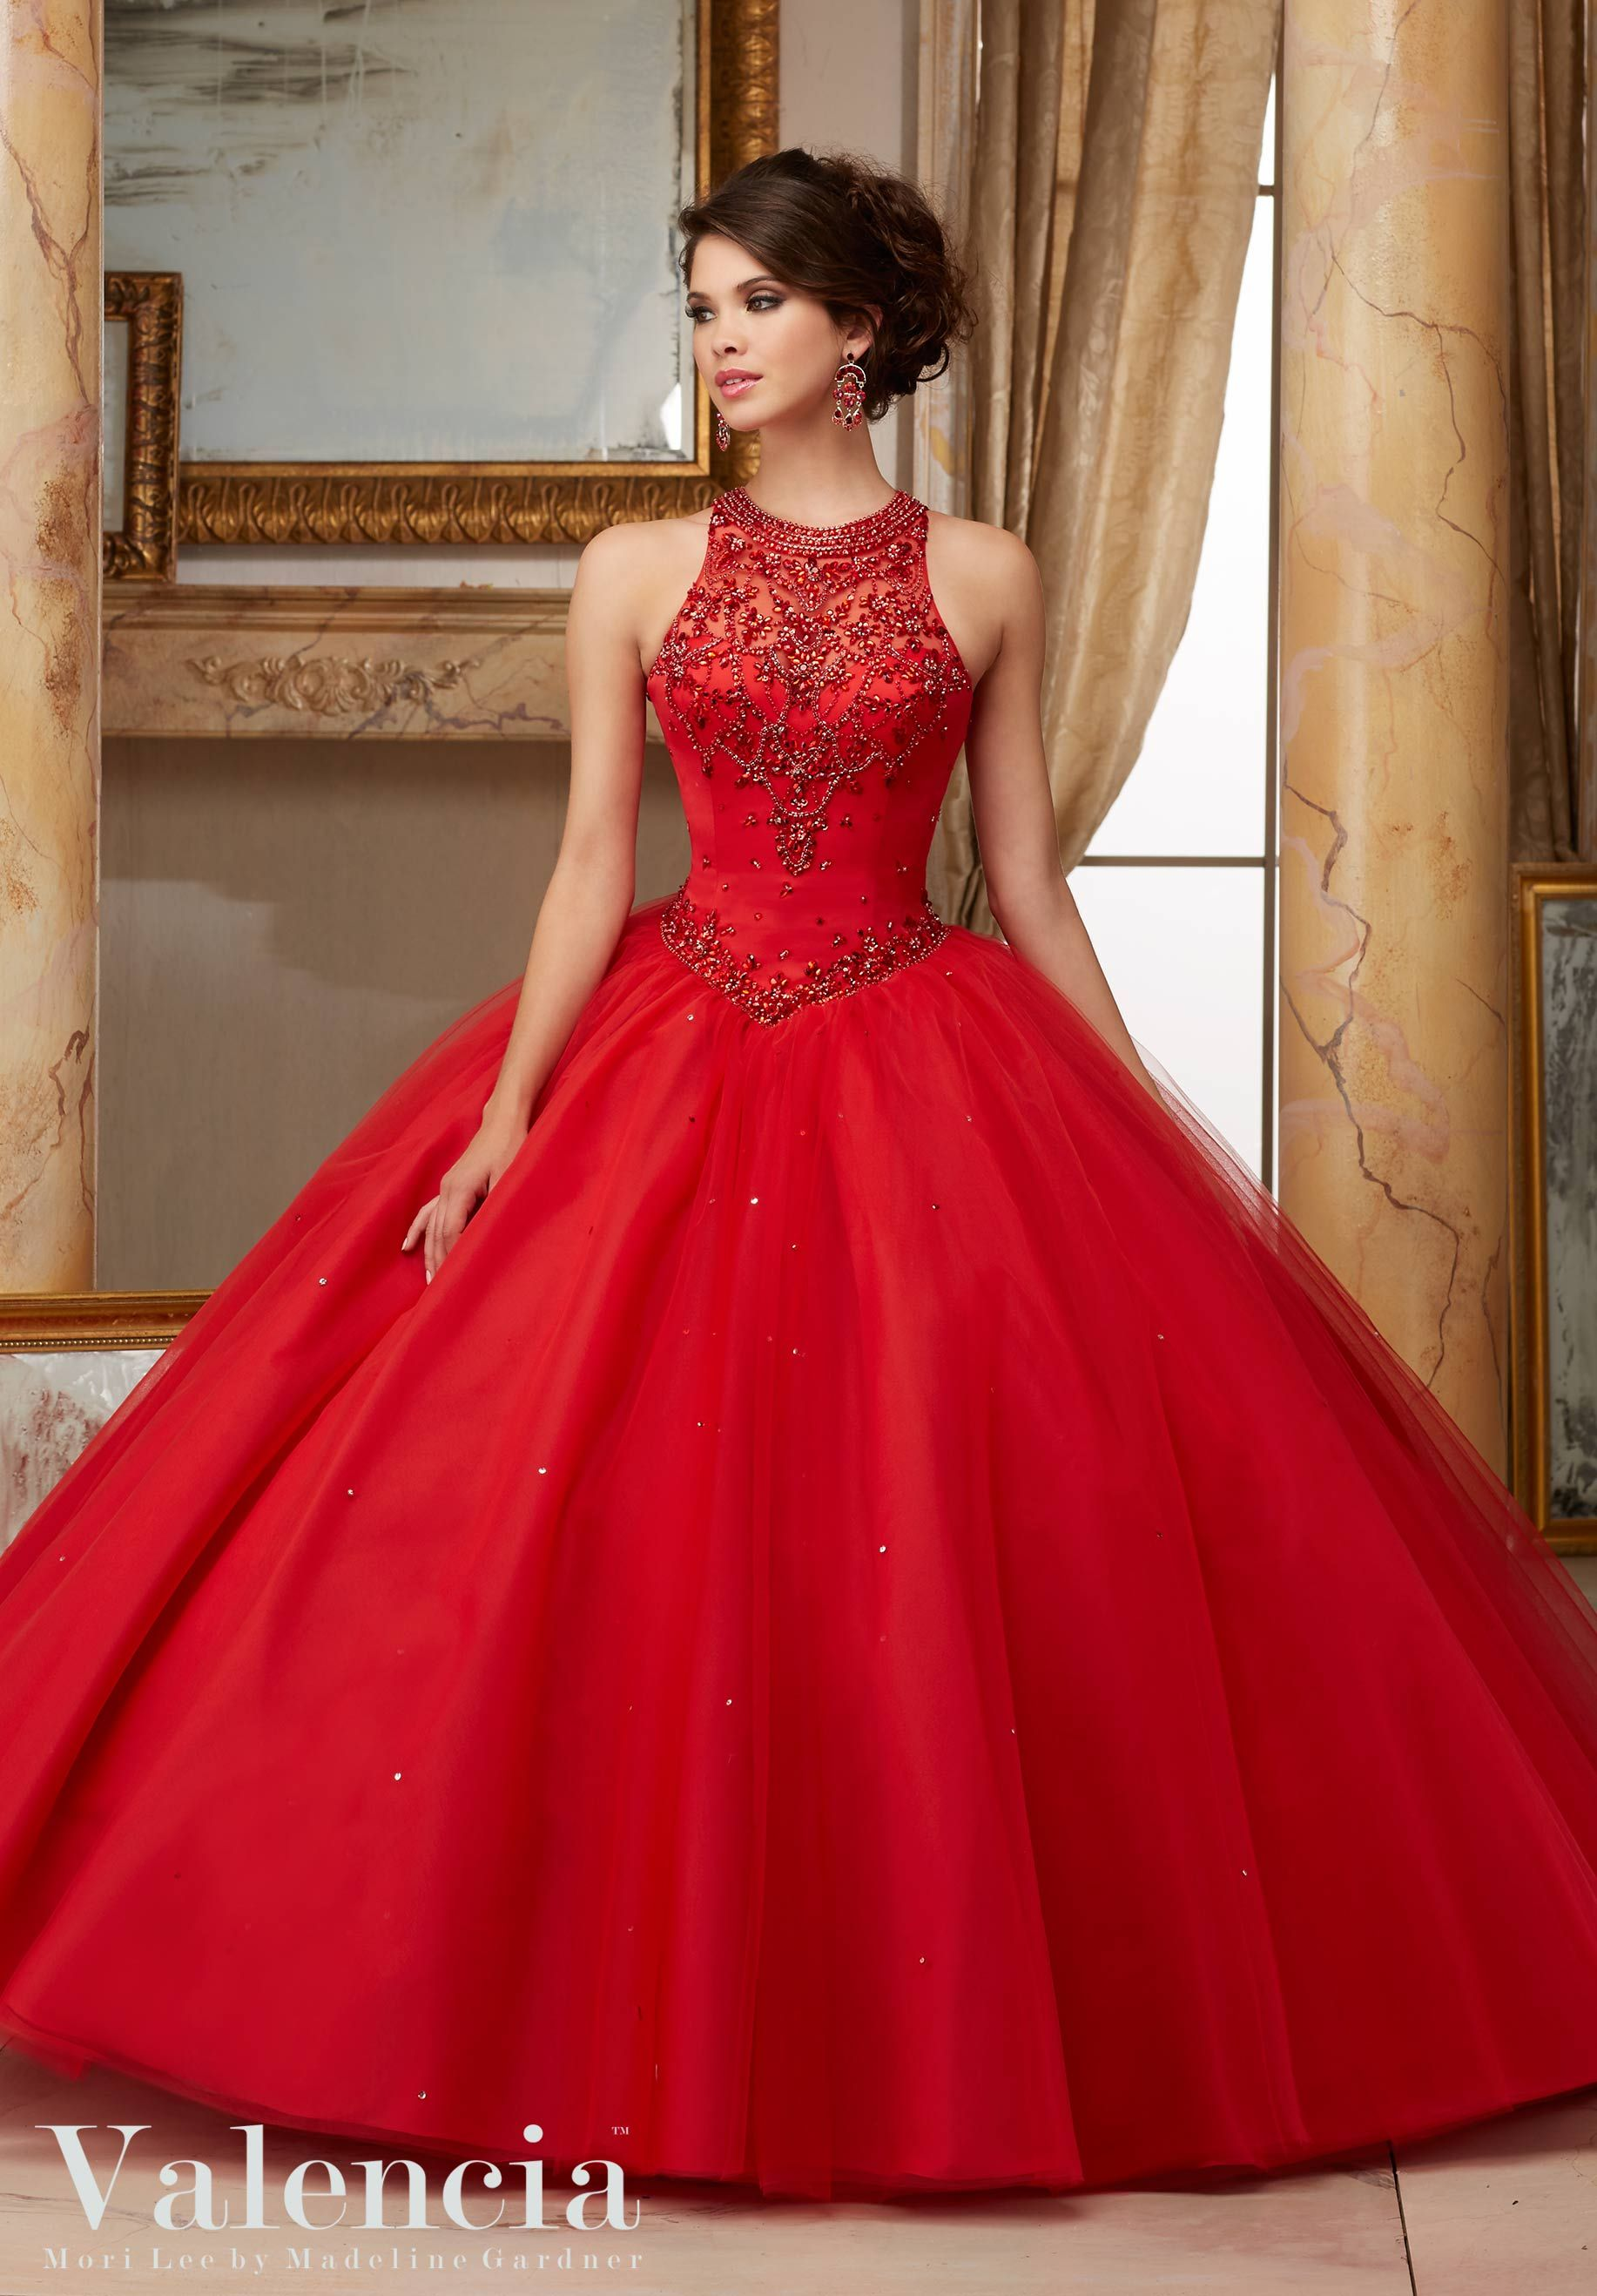 Jeweled Beaded Satin Bodice on Tulle Ball Gown Quinceañera Dress ...